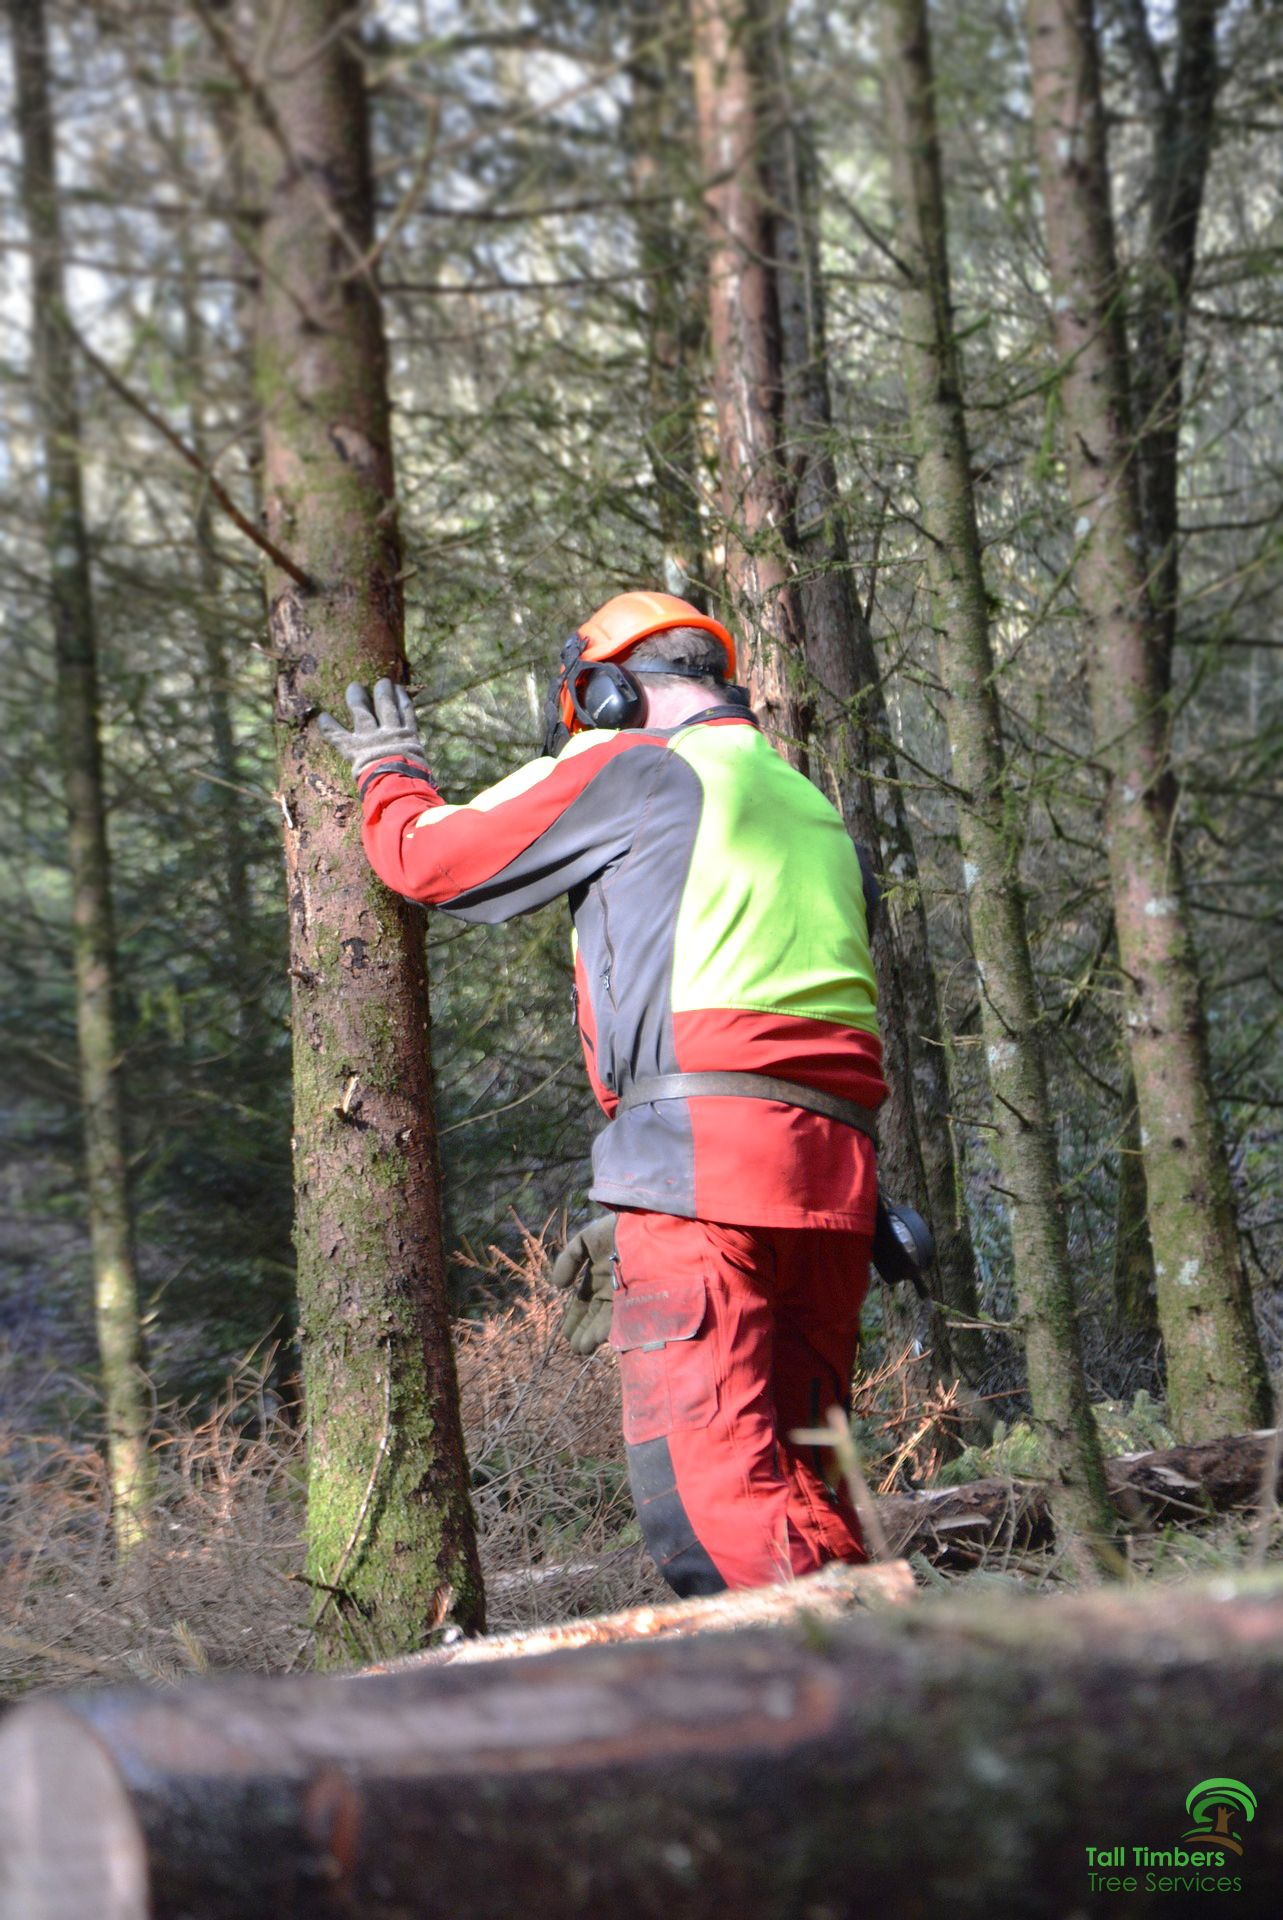 With A Vast Number Of Tree Care Companies And Tree Surgeons In Sydney It Can Become Very Confusing And Hard To Know Who To Tree Service Tree Surgeons Tree Care